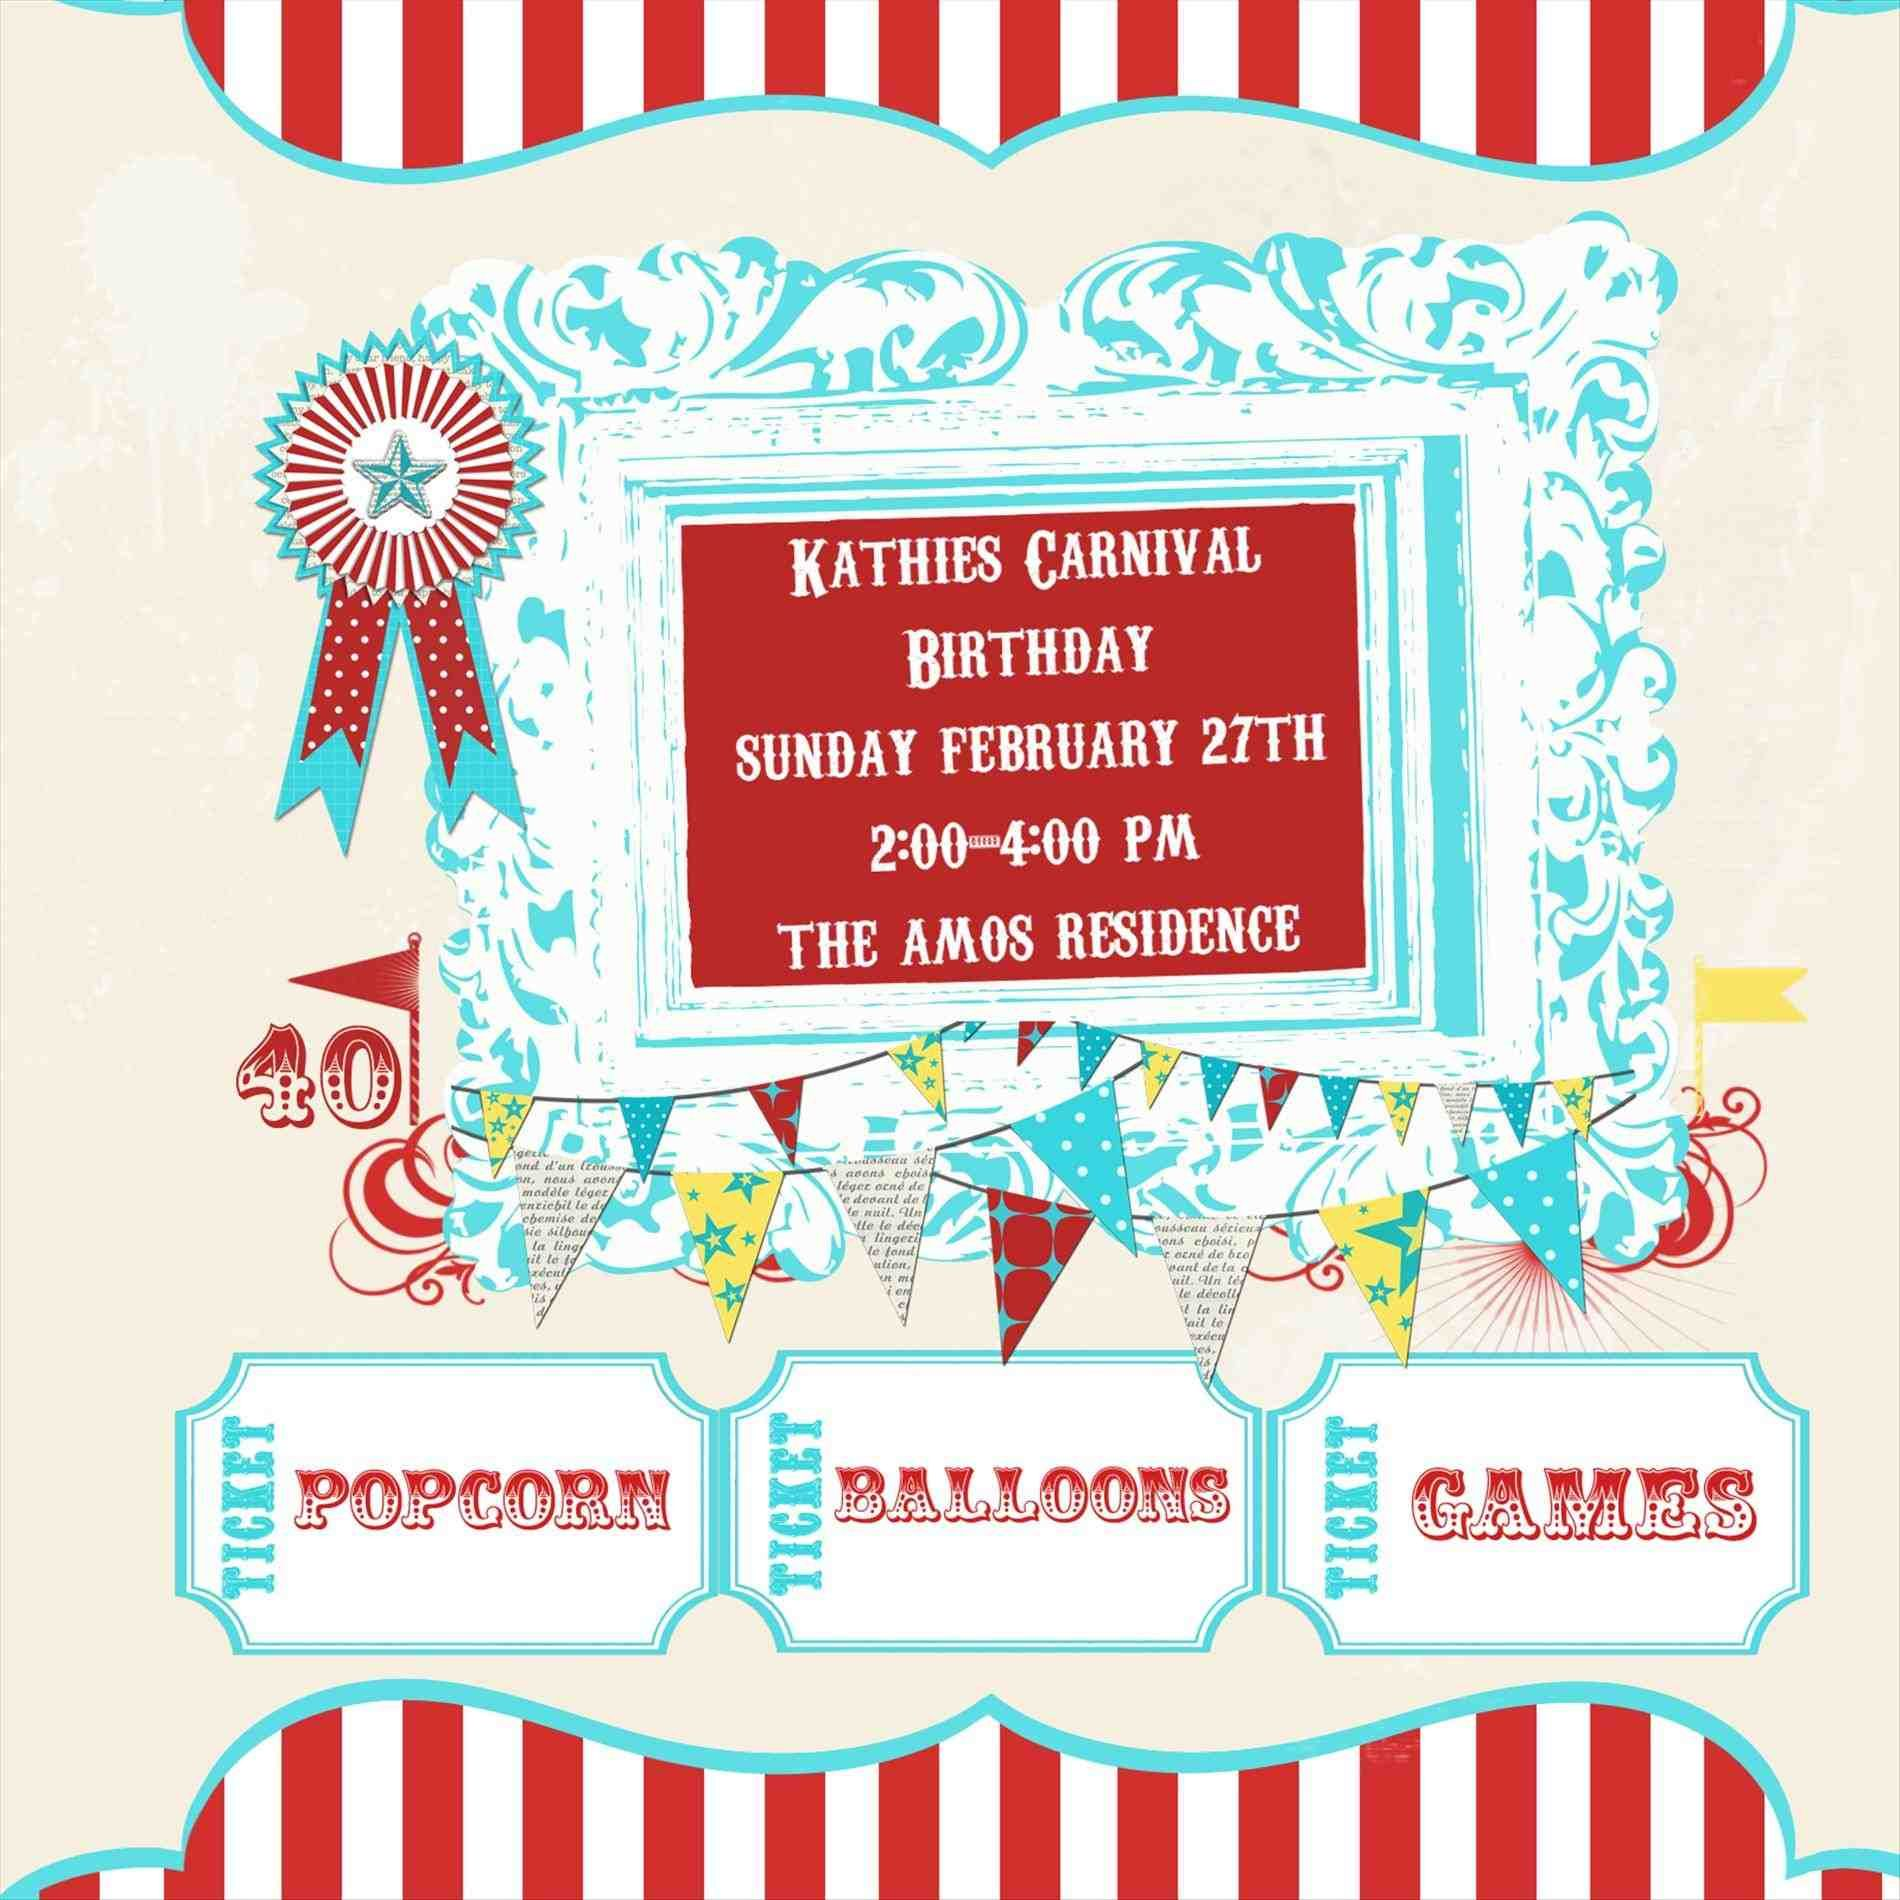 Contemporary How To Invite For Birthday Party Image Collection ...